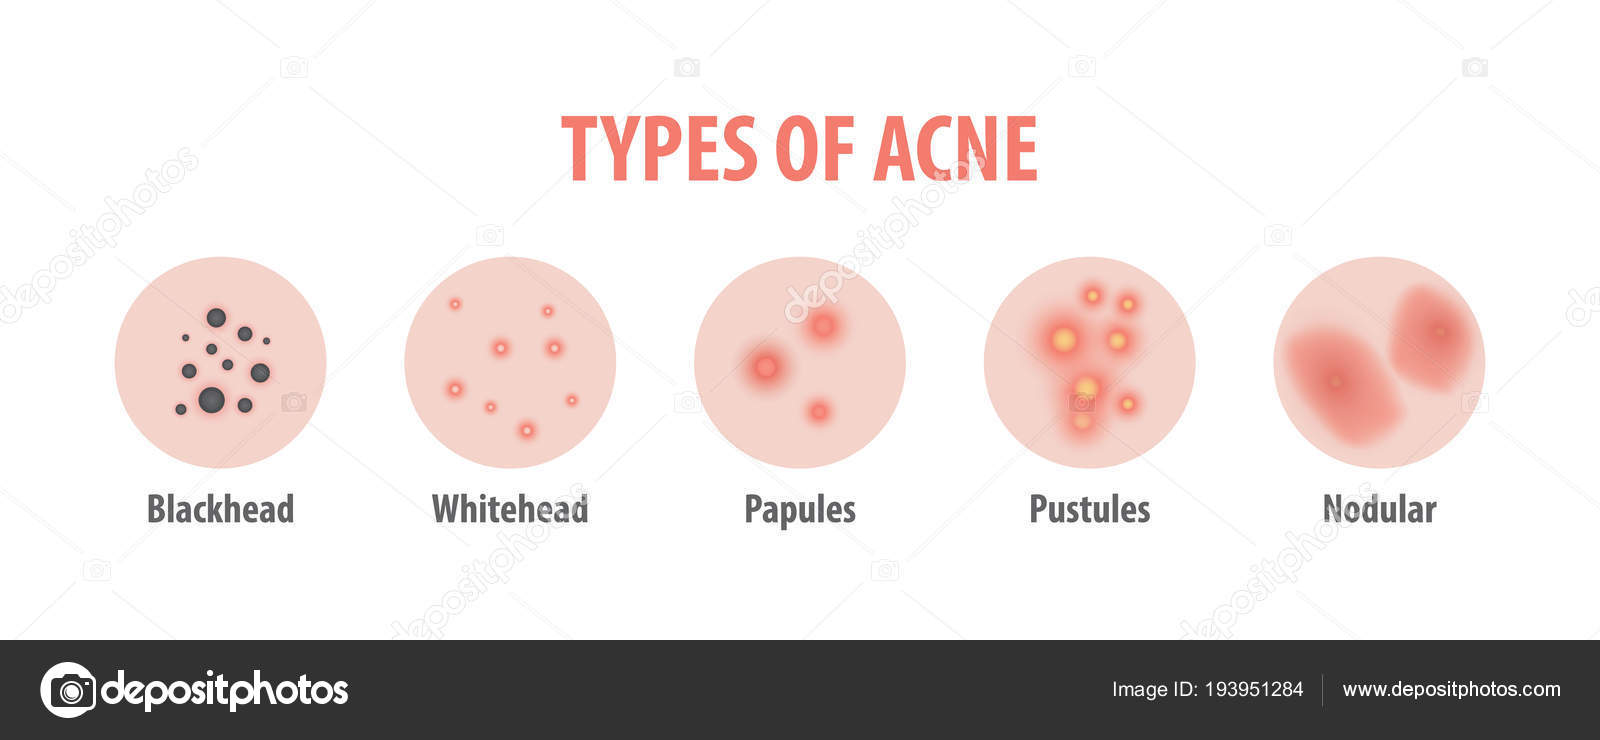 hight resolution of types of acne diagram illustration vector on white background b stock vector